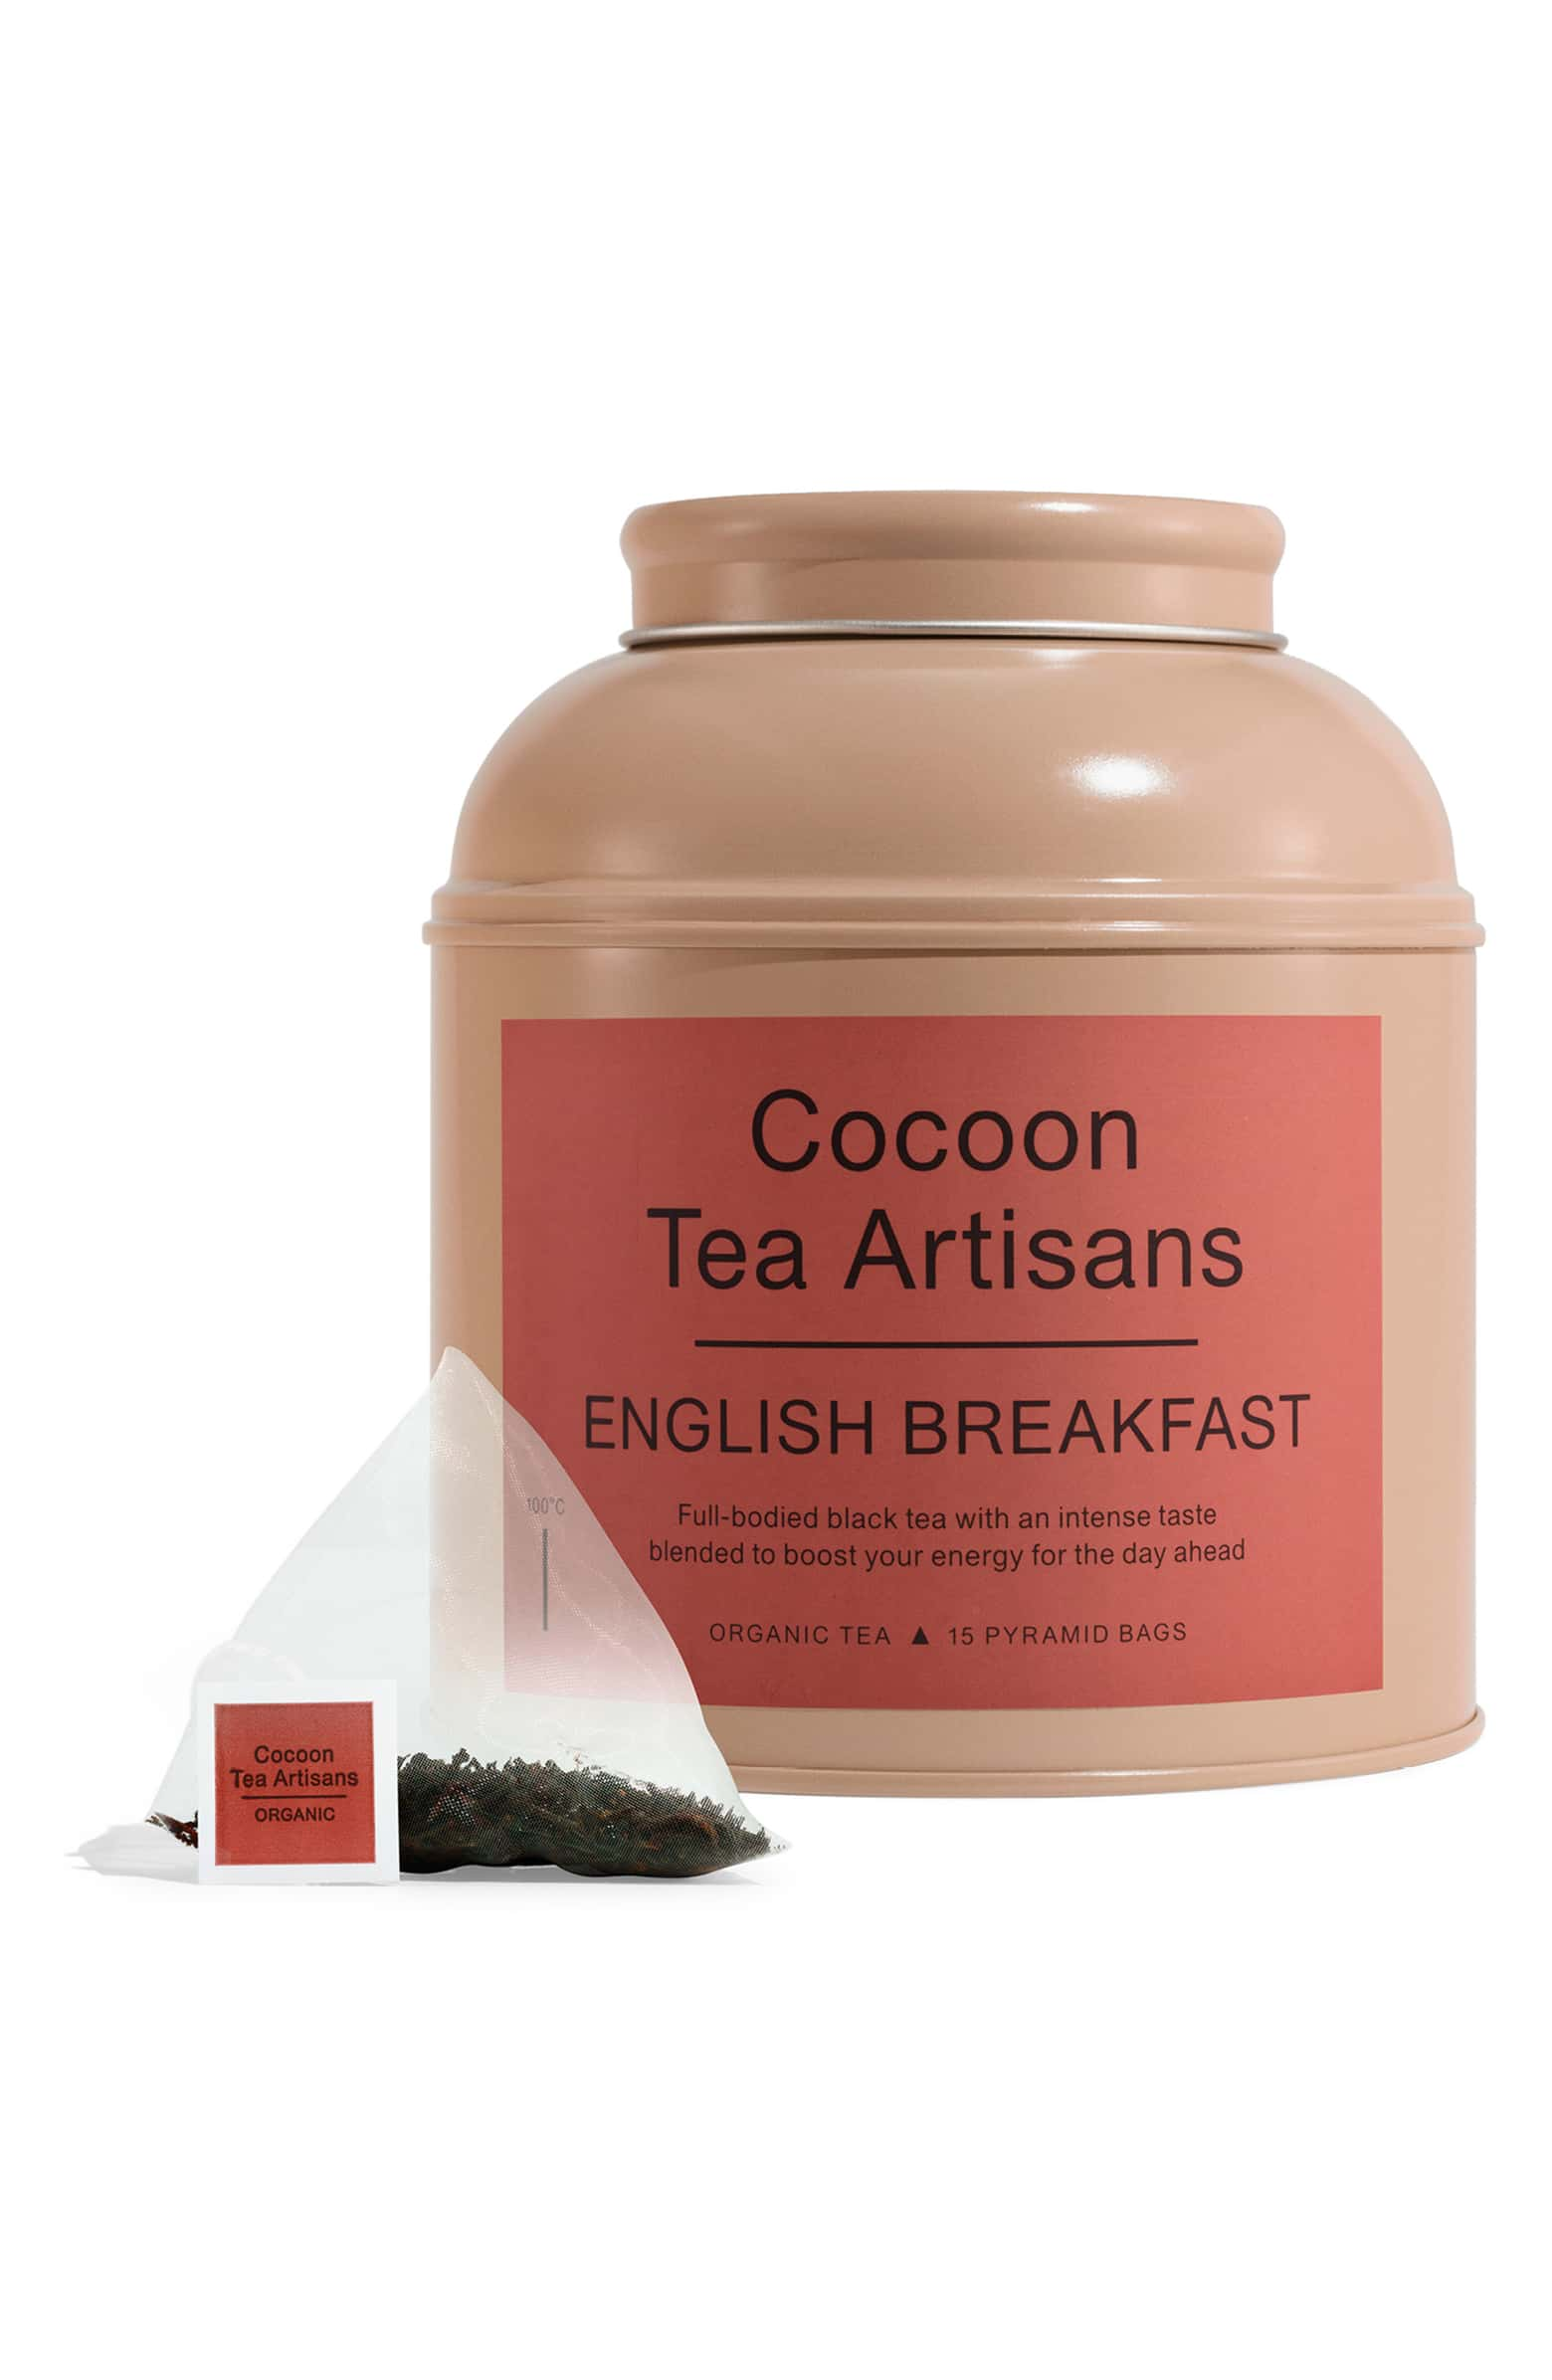 Organic English Breakfast Tea Big Tea Caddy COCOON TEA ARTISANS $32.00